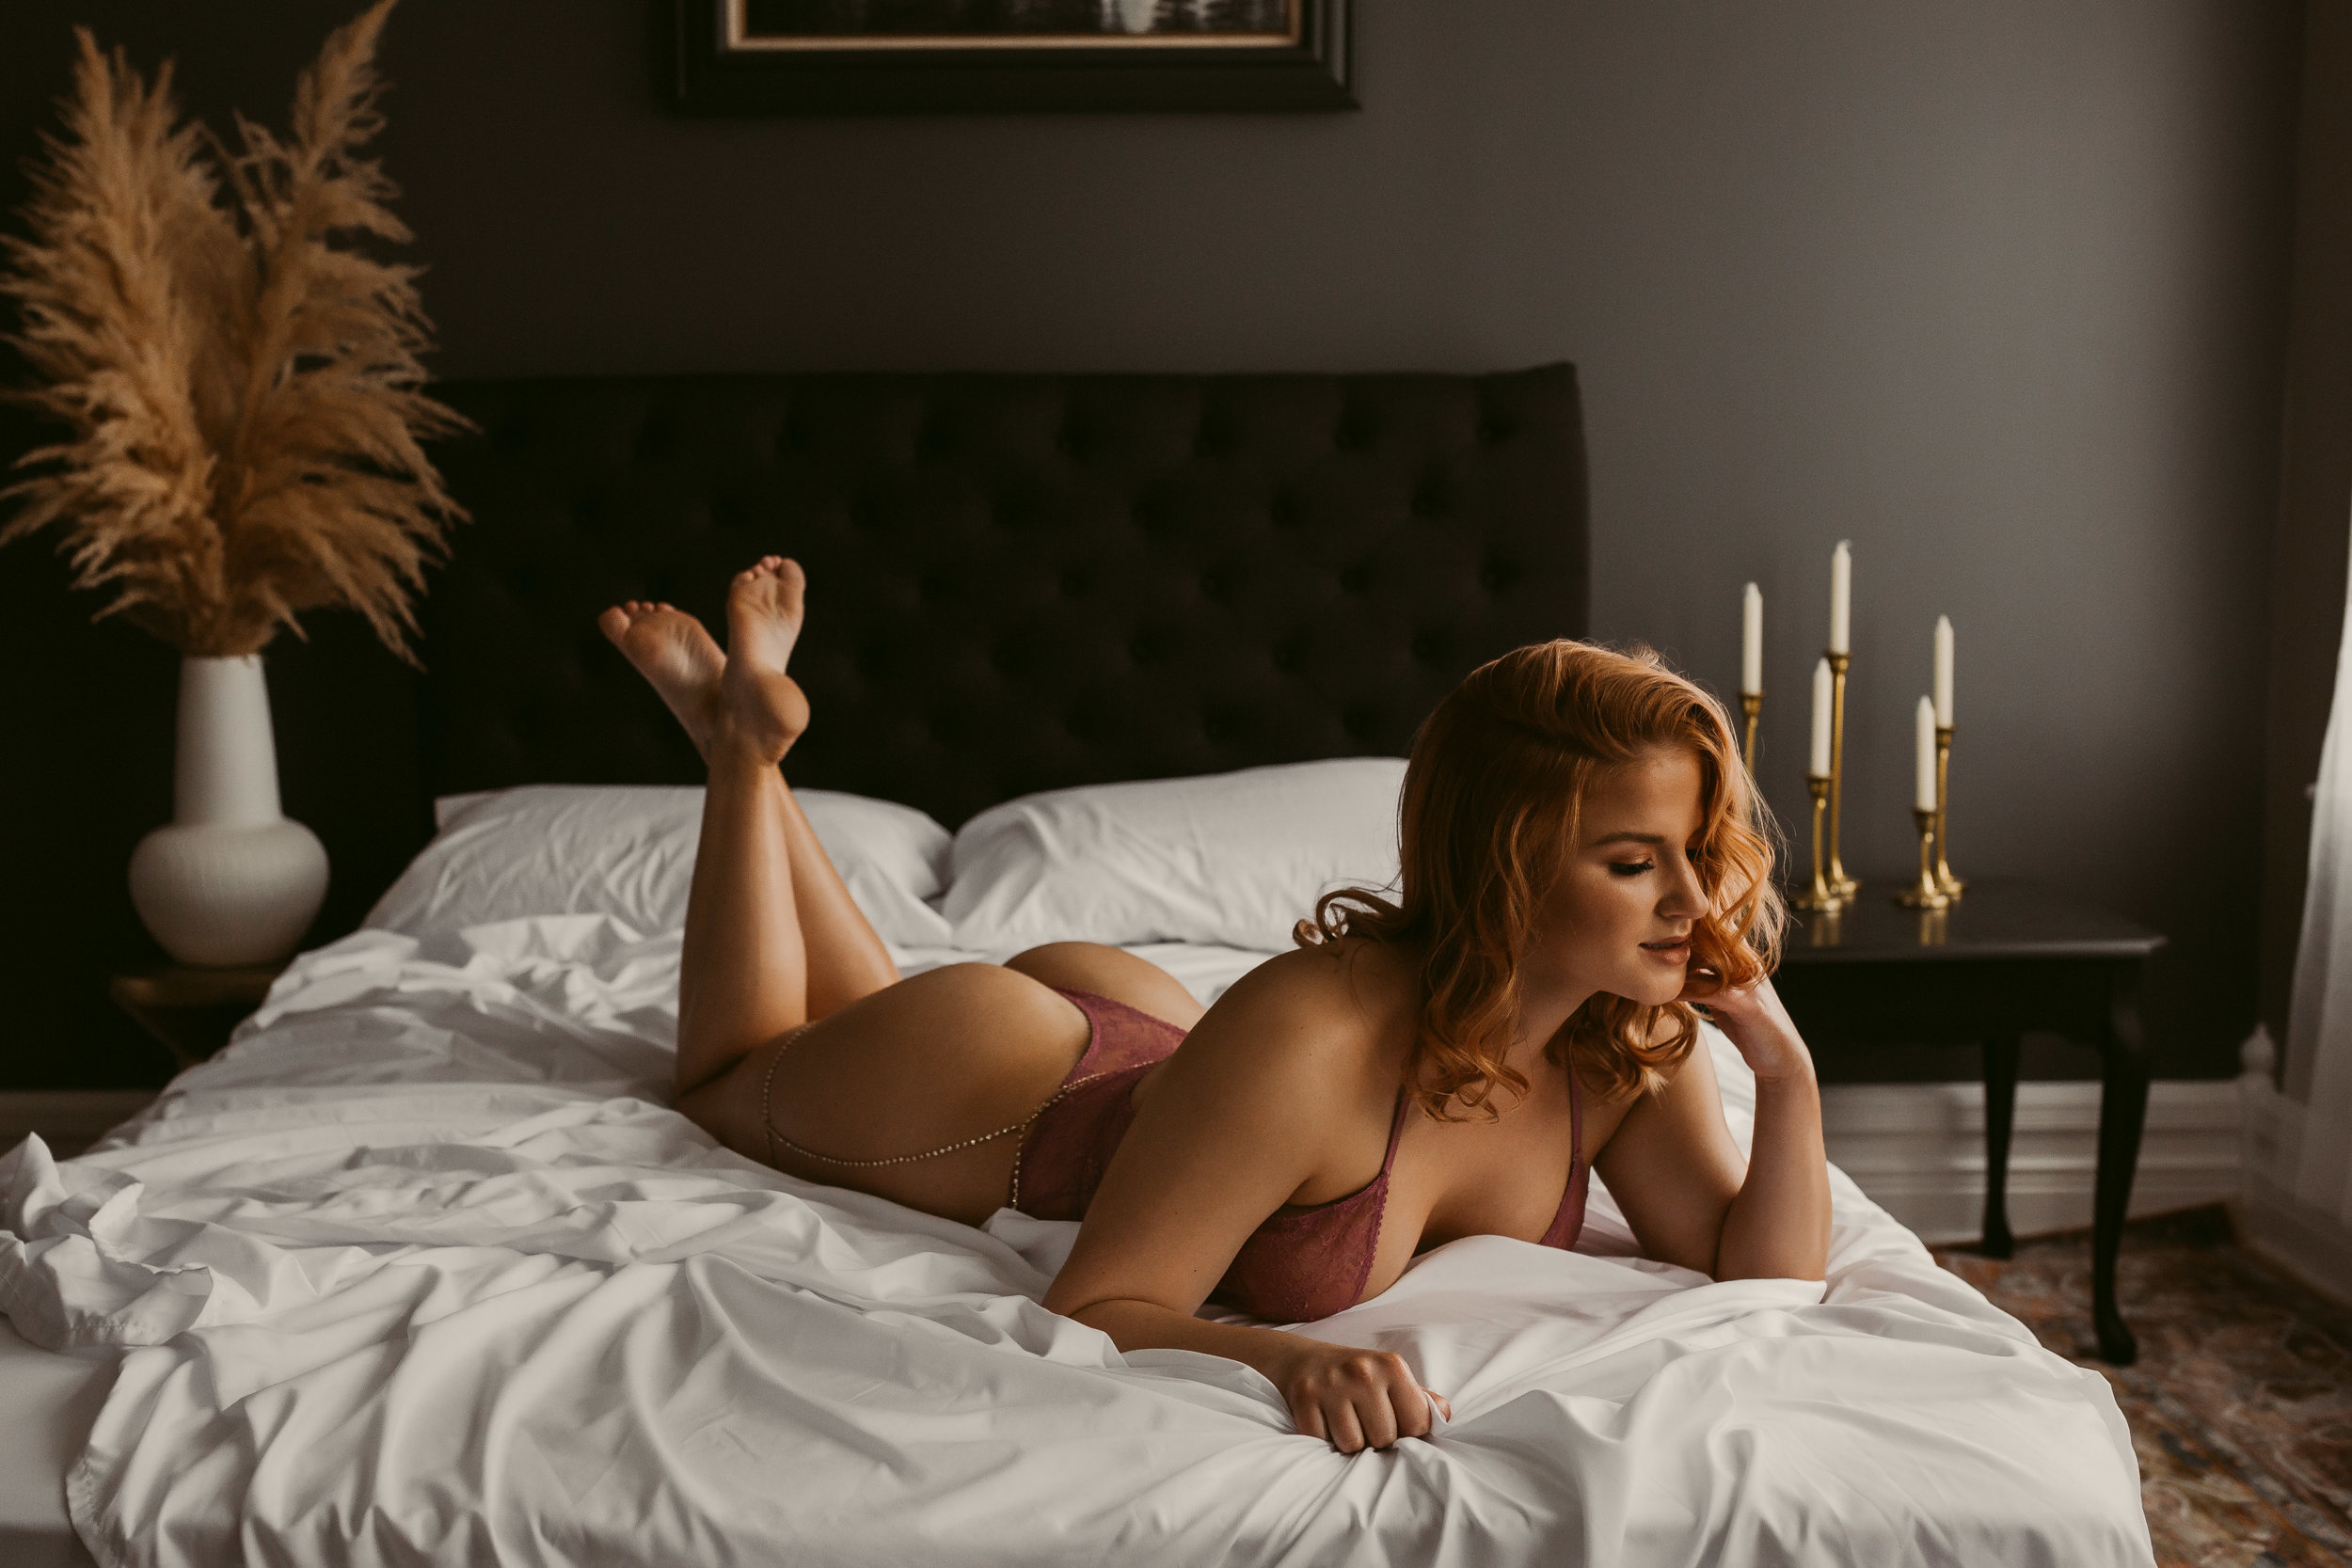 Butterfly_Boudoir_Michigan_Boudoir_Photography201.JPG